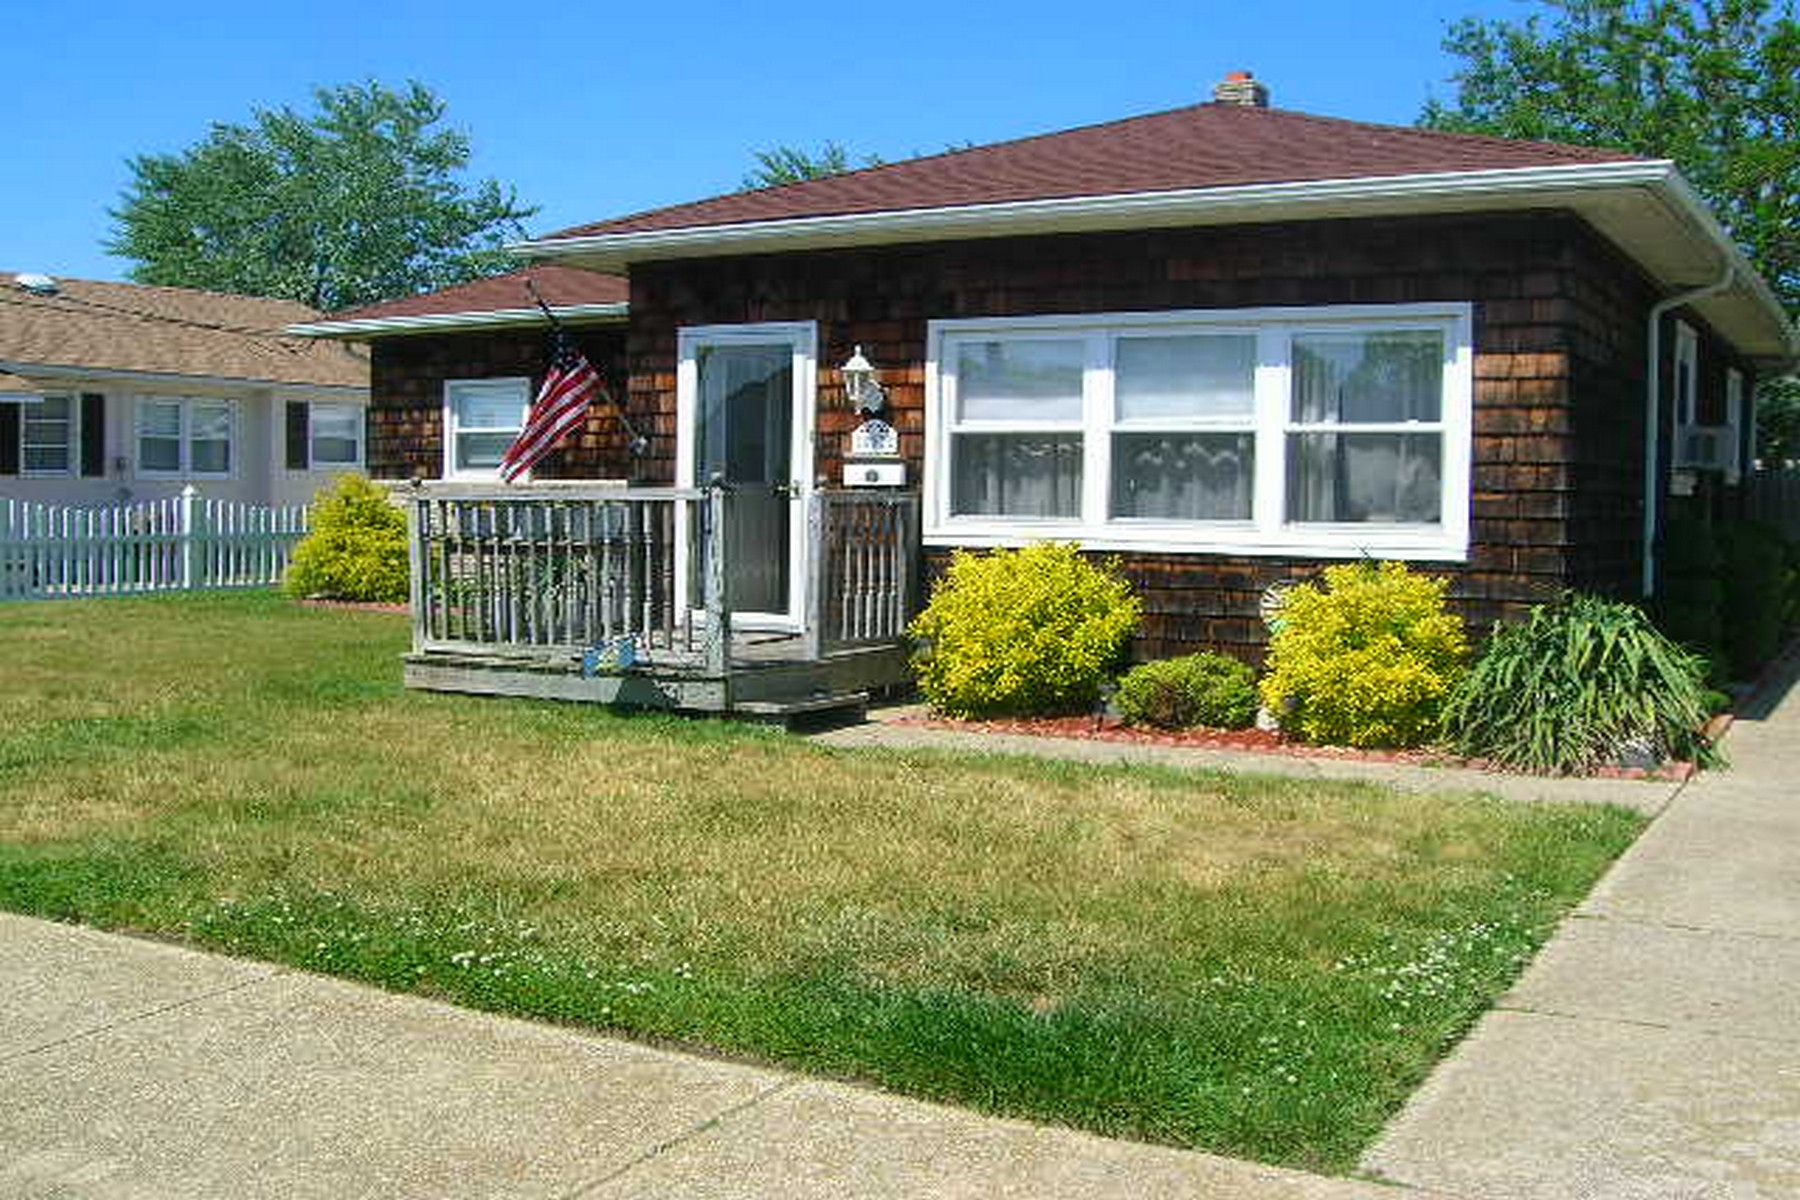 Single Family Home for Sale at 503 N Cornwall 503 N Cornwall Ventnor, New Jersey 08406 United States